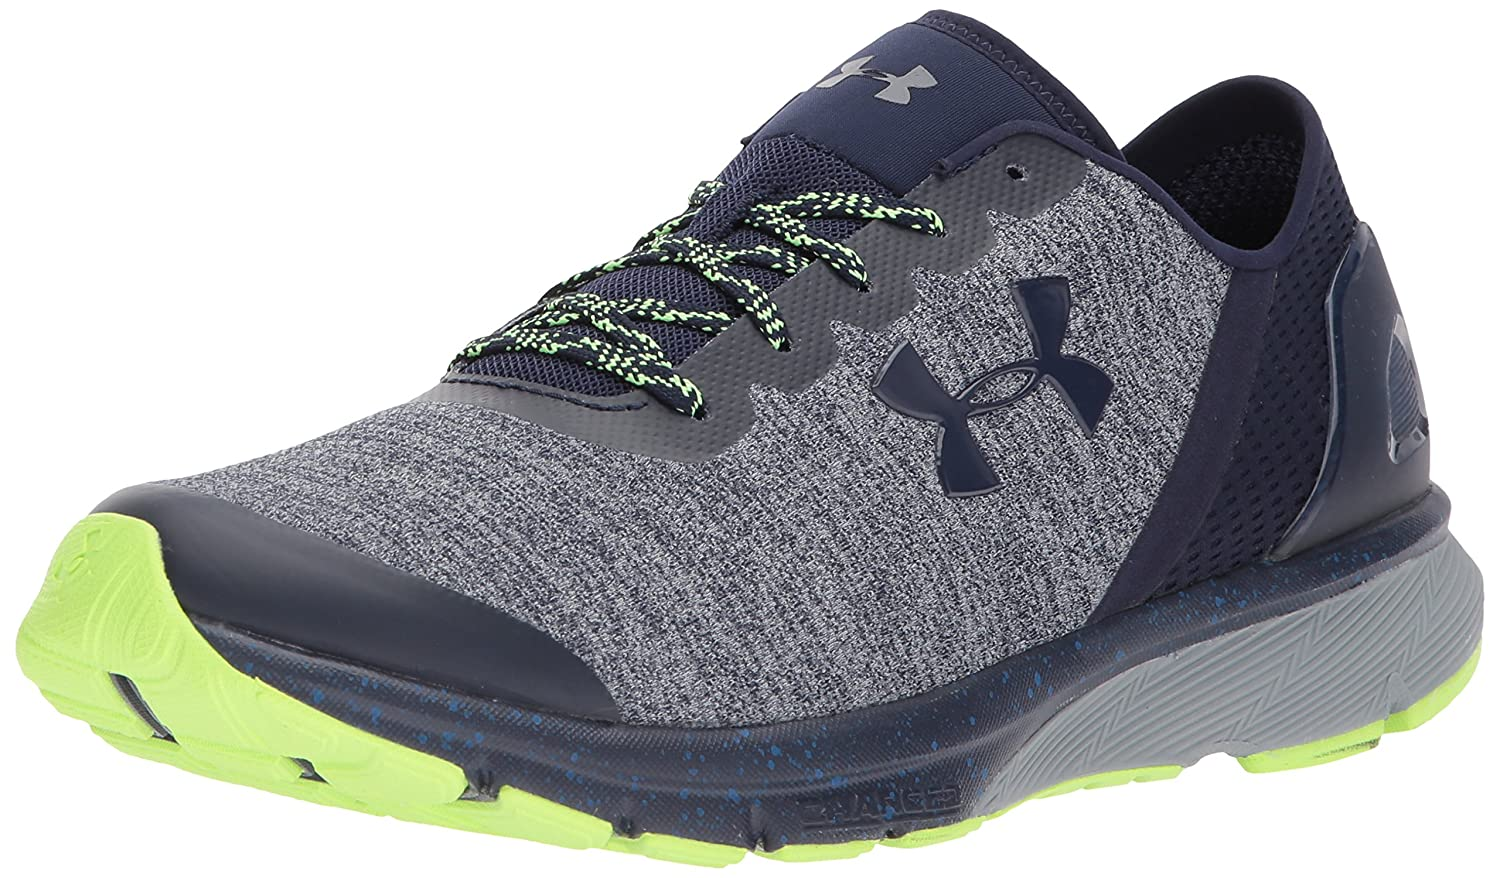 Under Armour Men's Charged Escape Running Shoe B0758HHMBR 7 M US|Midnight Navy/Royal